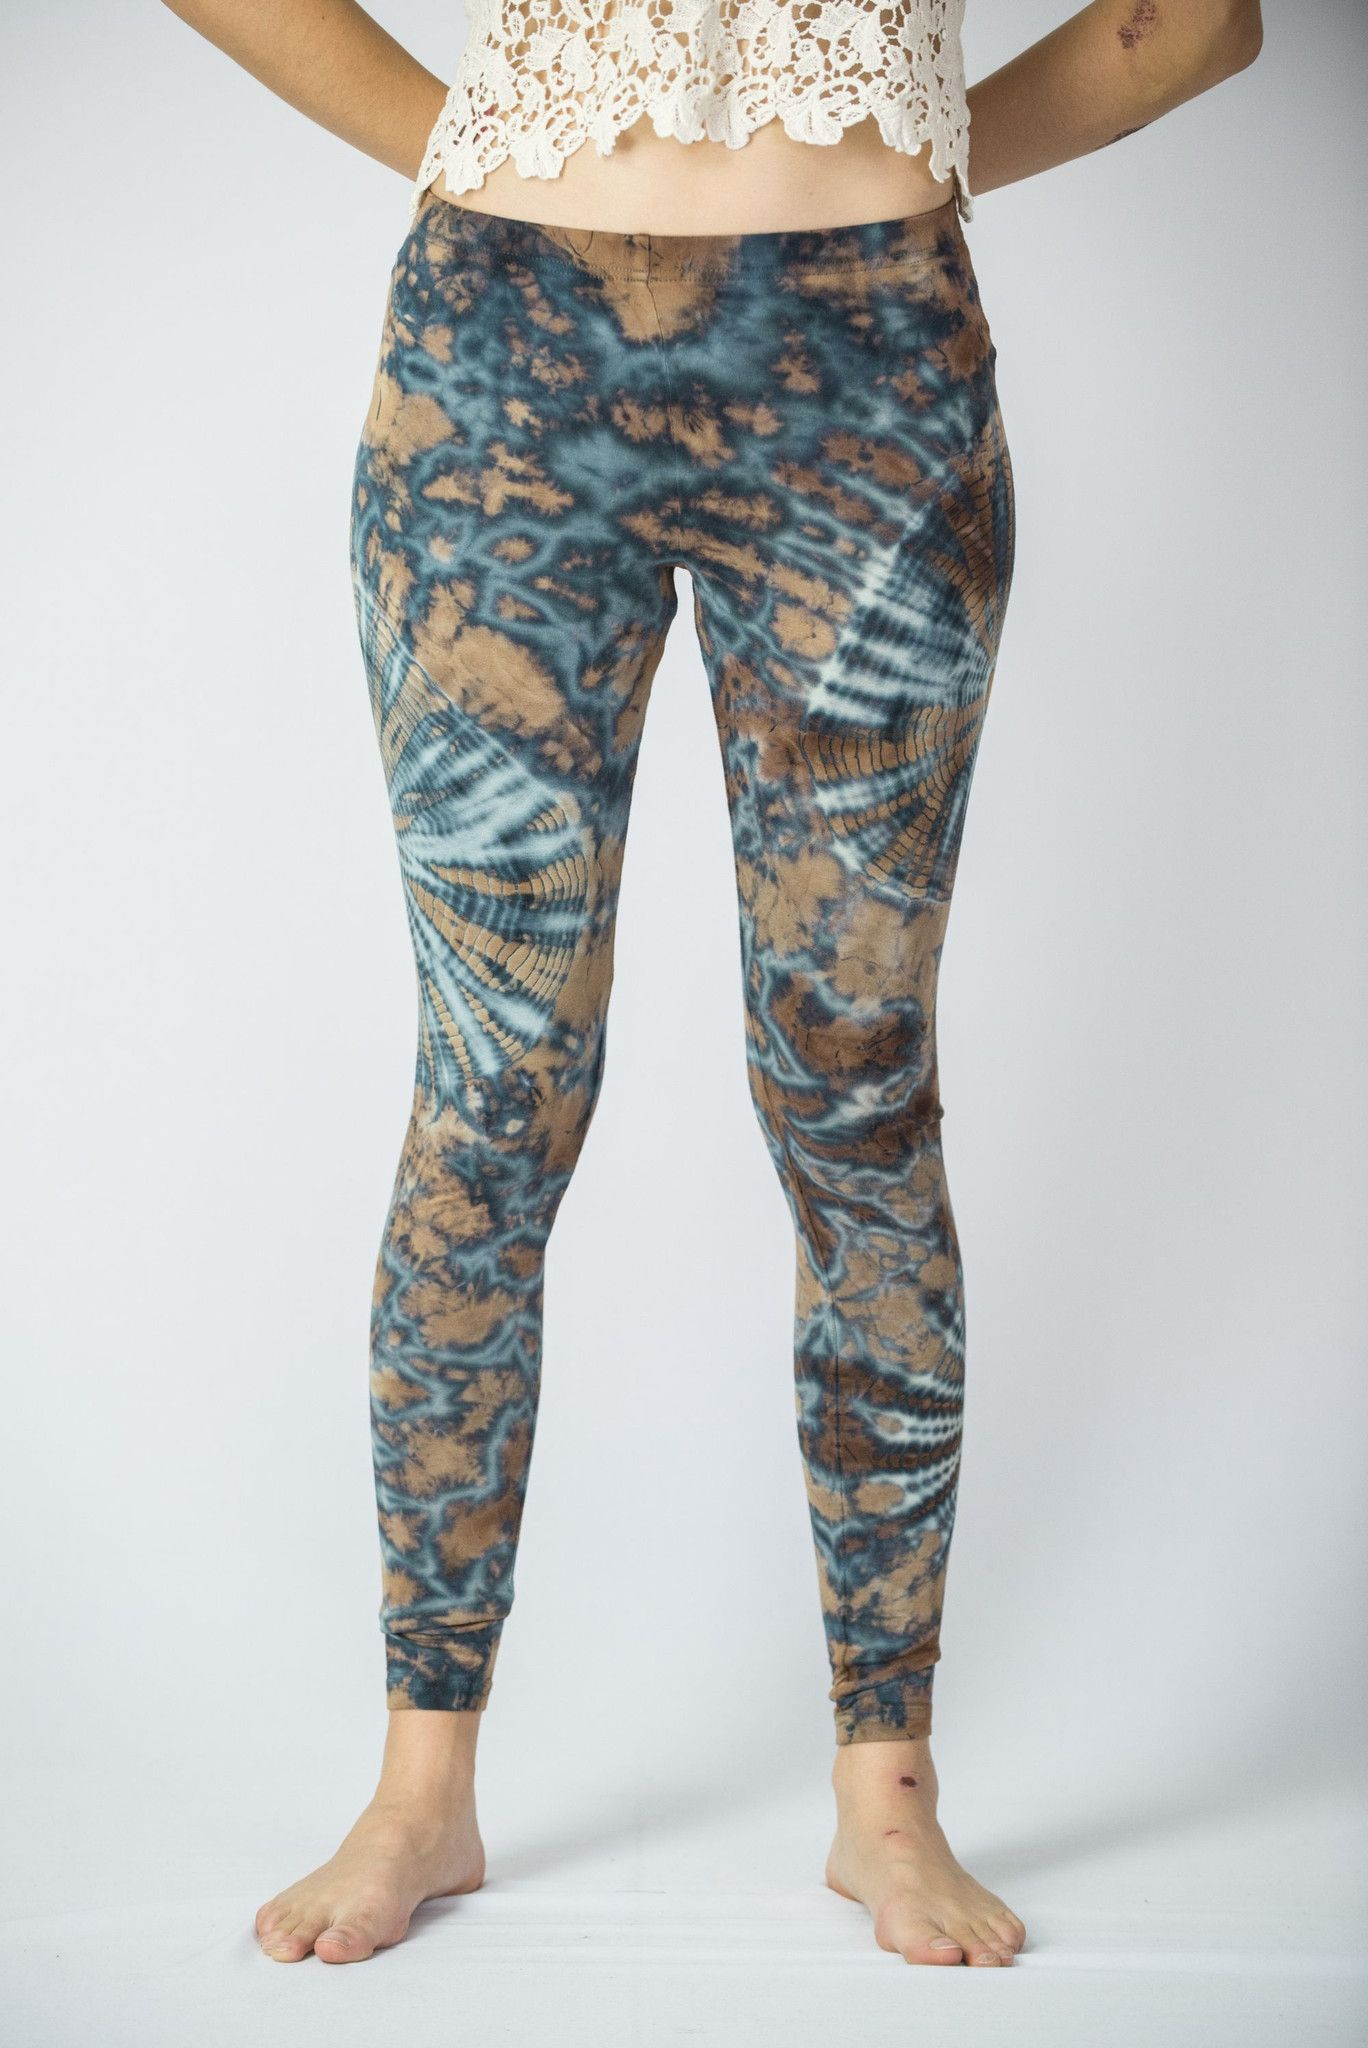 cc41e092a7ba Unique electric designs tie dye leggings made from soft cotton material.  Free international shipping on